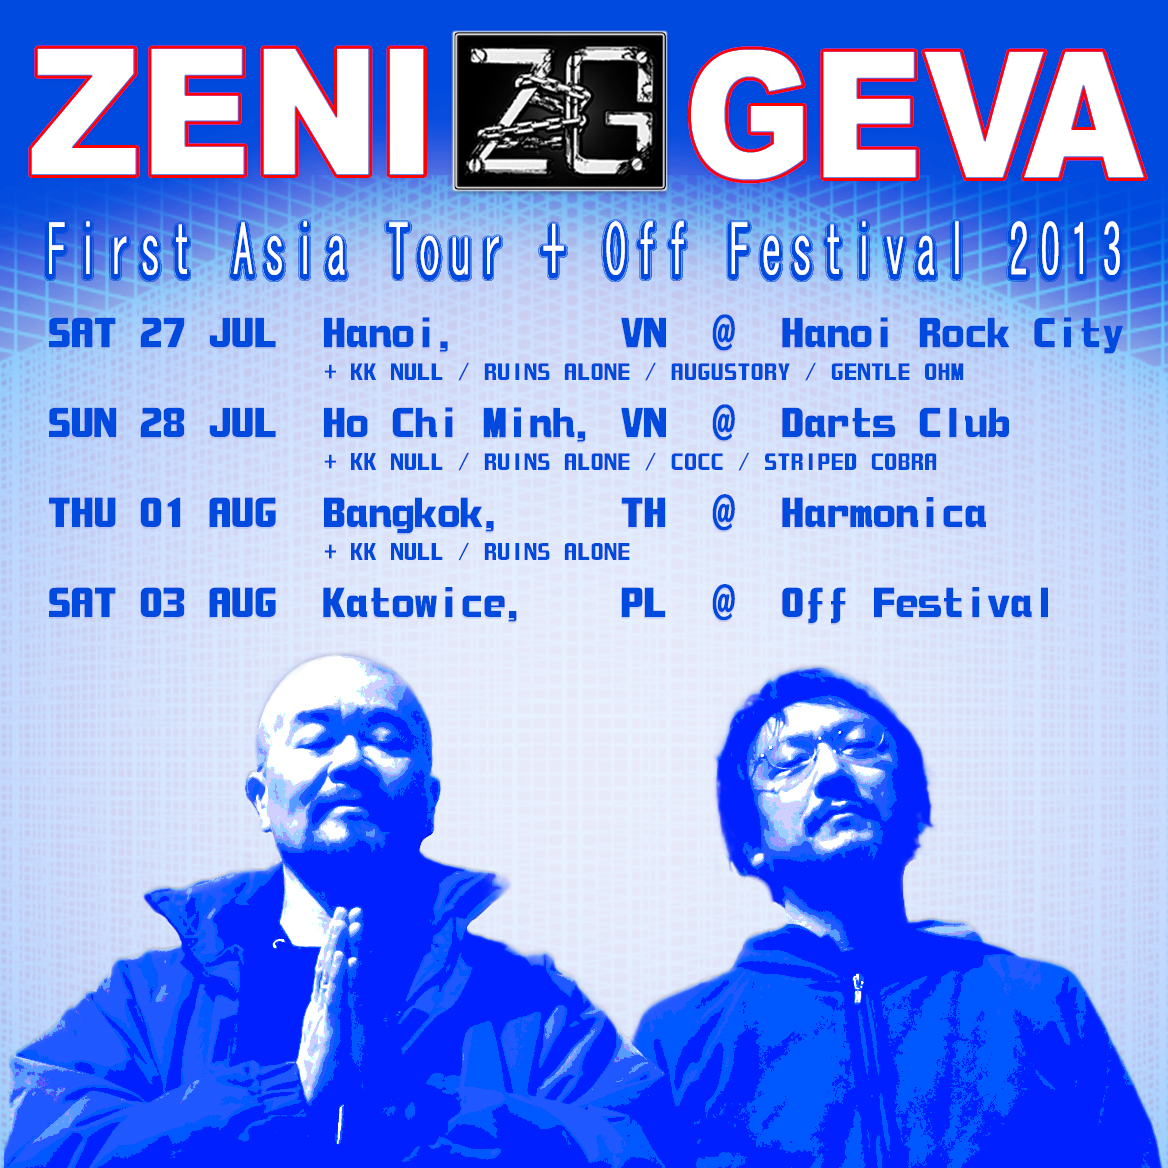 ZENI GEVA first Asia tour + Off festival 2013